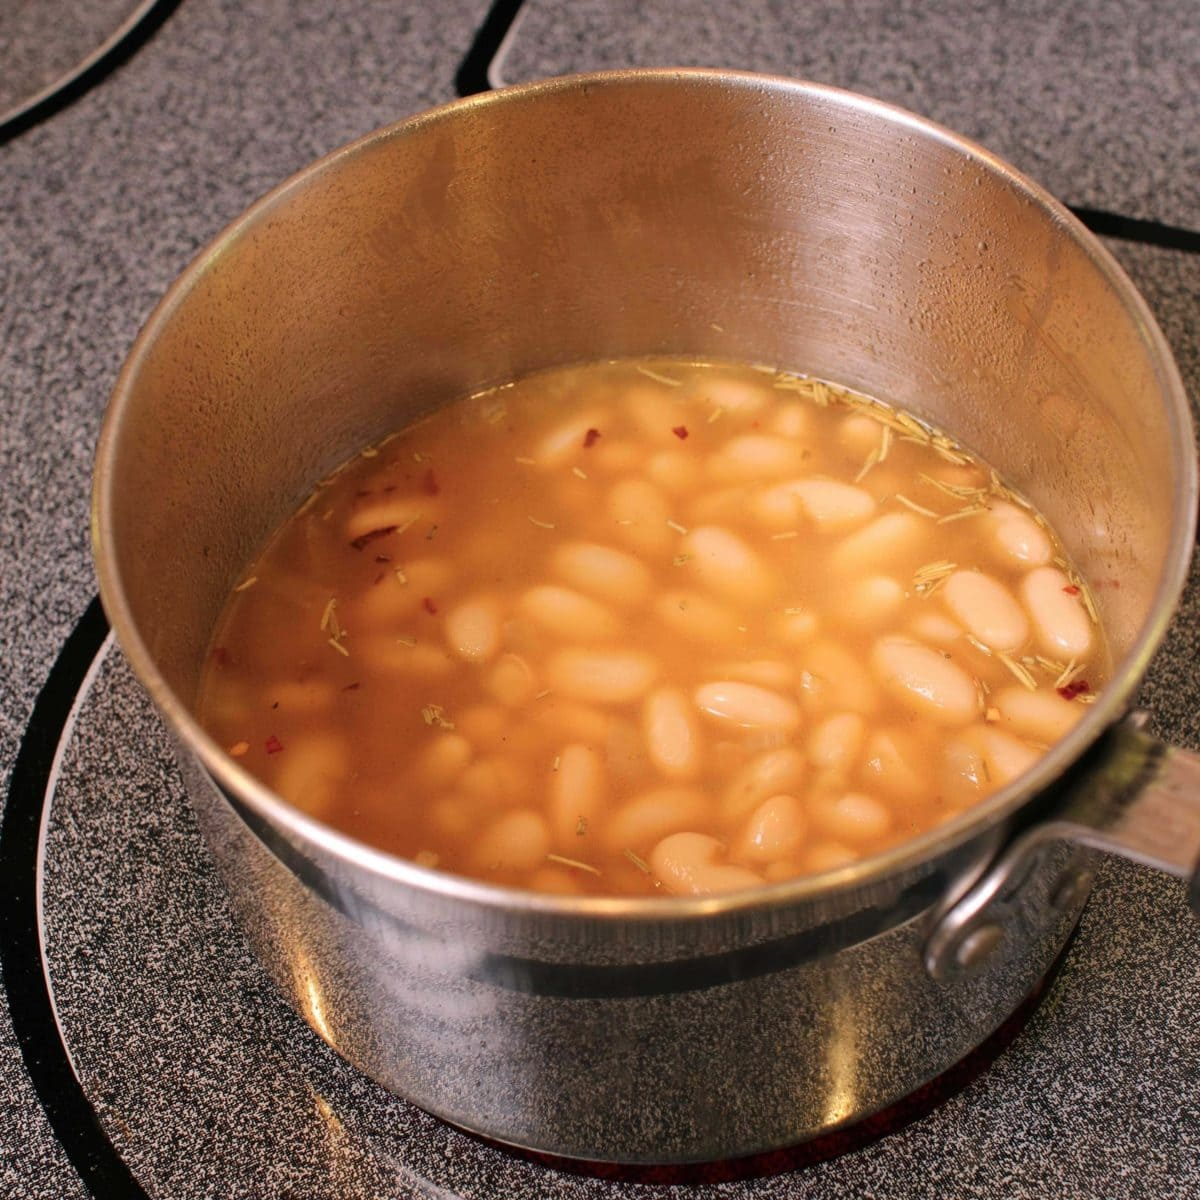 a pot of beans simmering in a broth